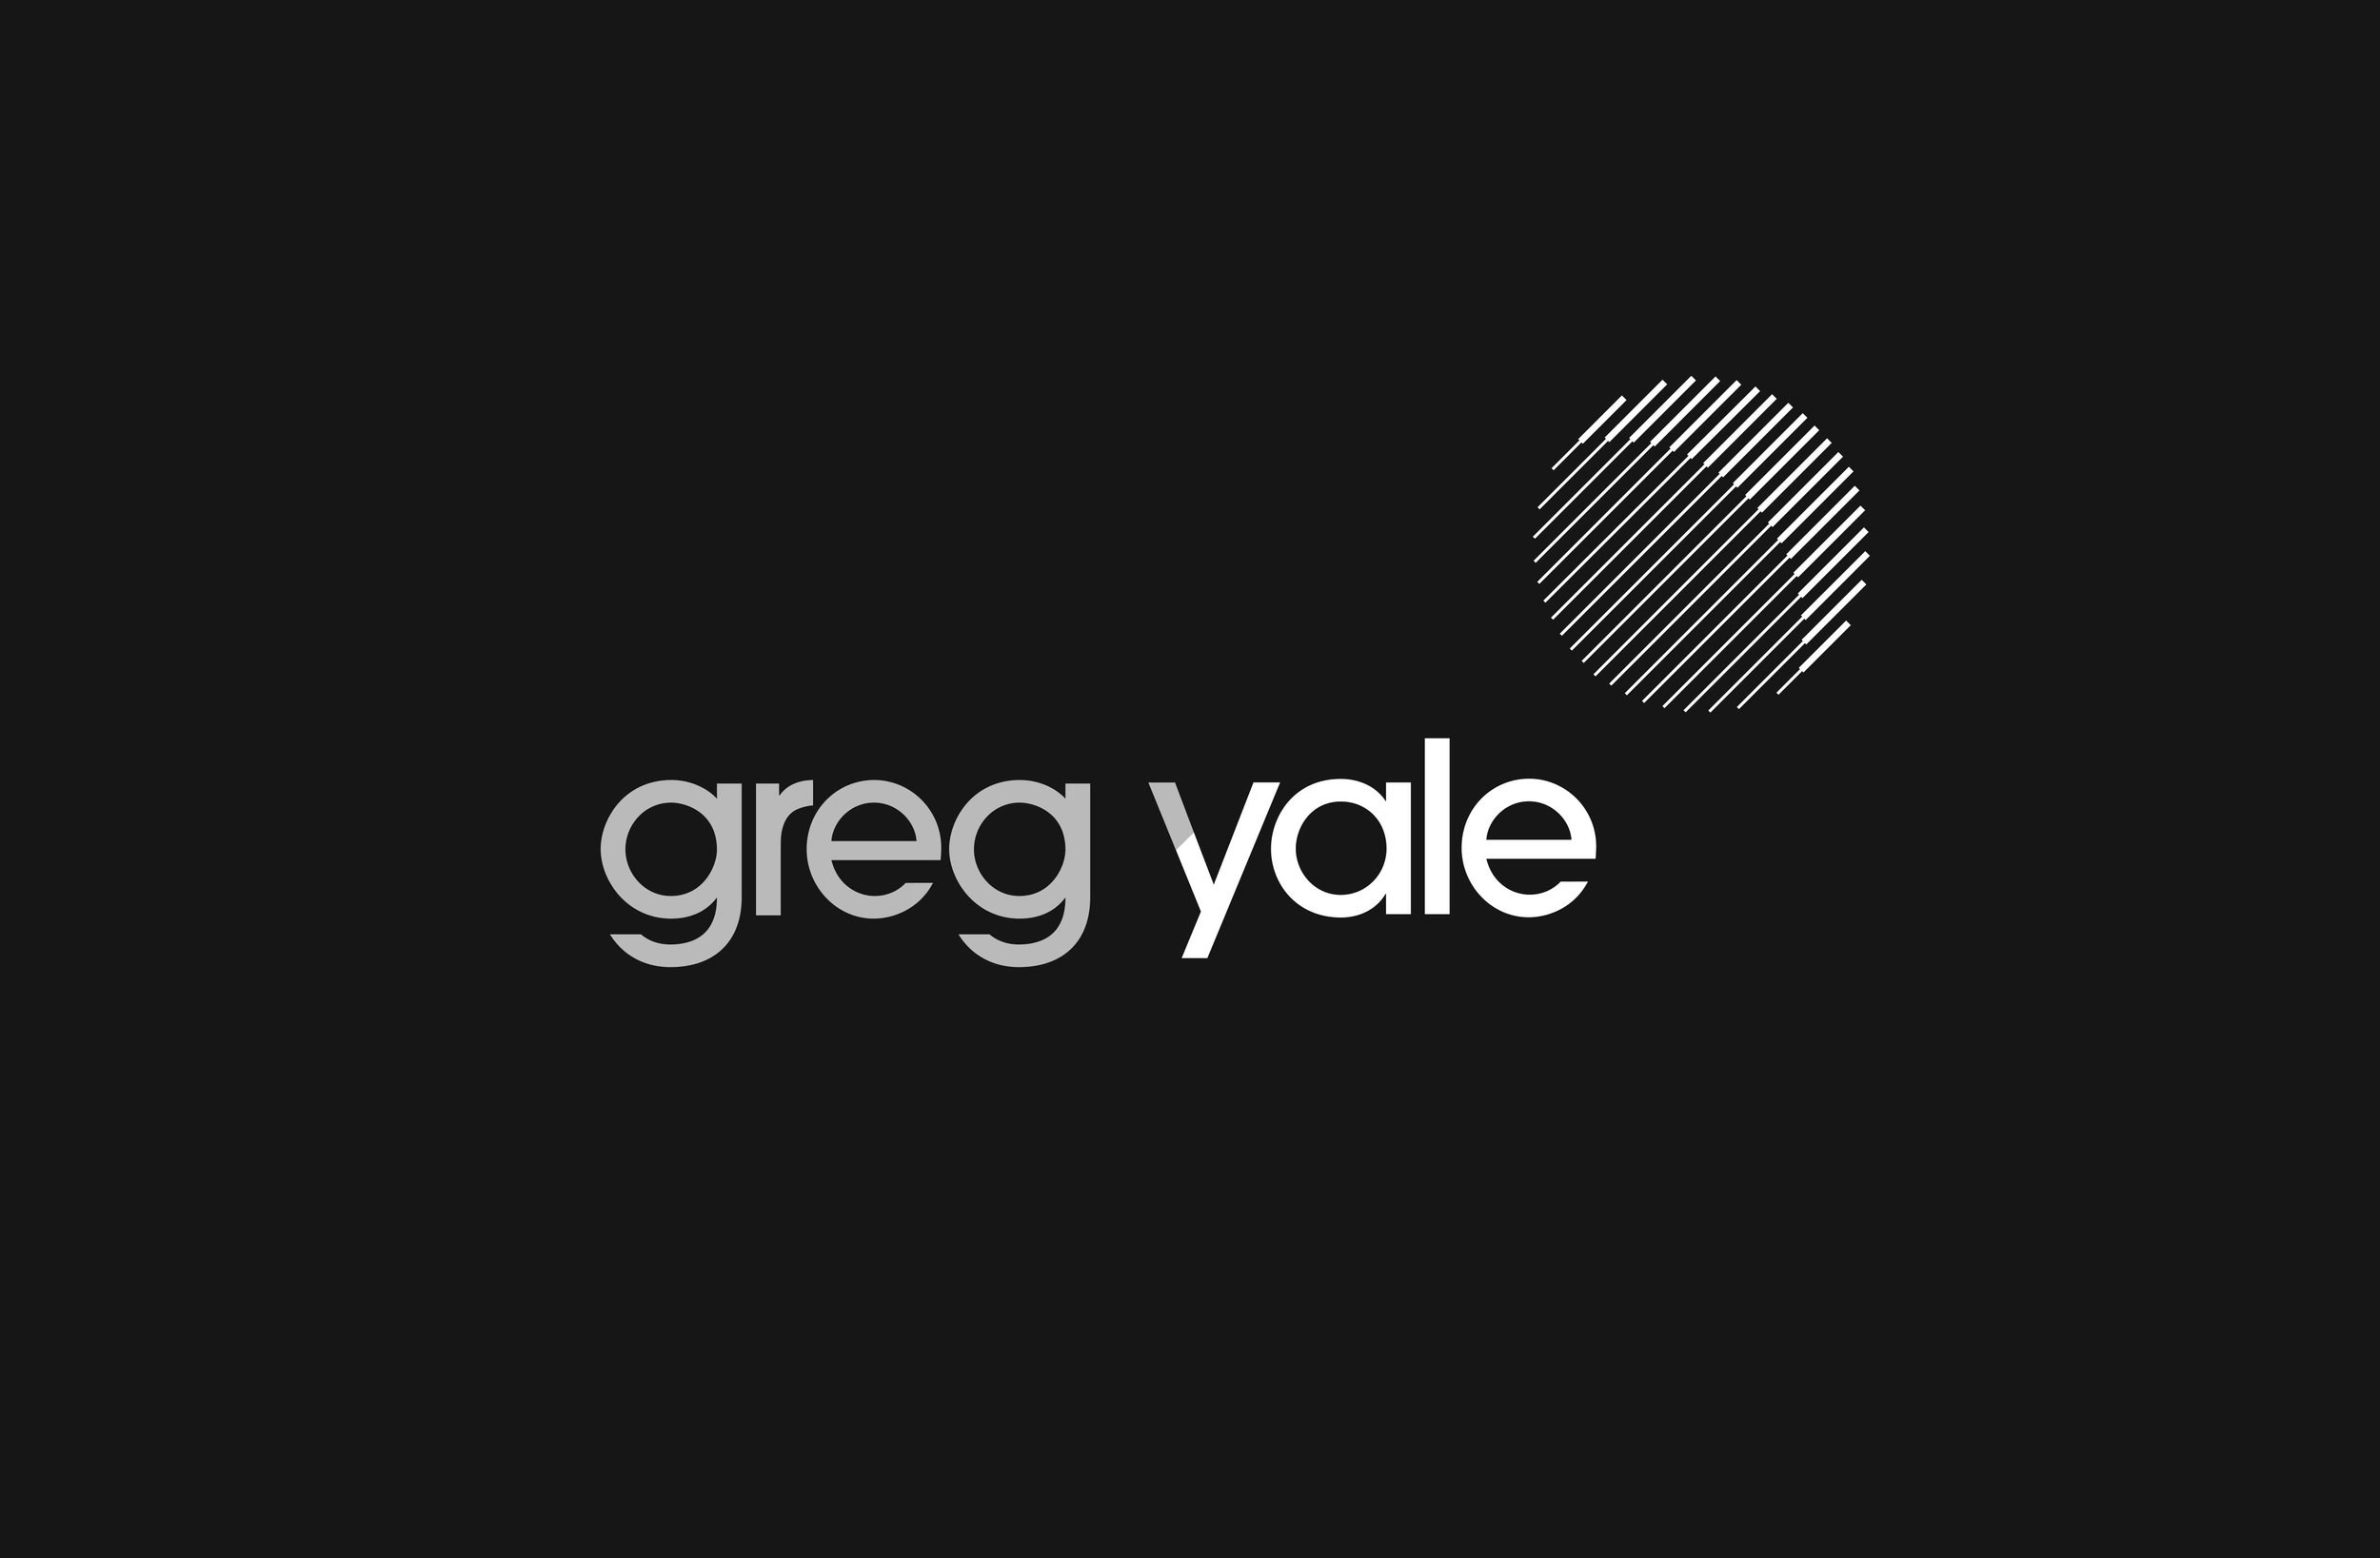 greg_logo_on_black.jpg